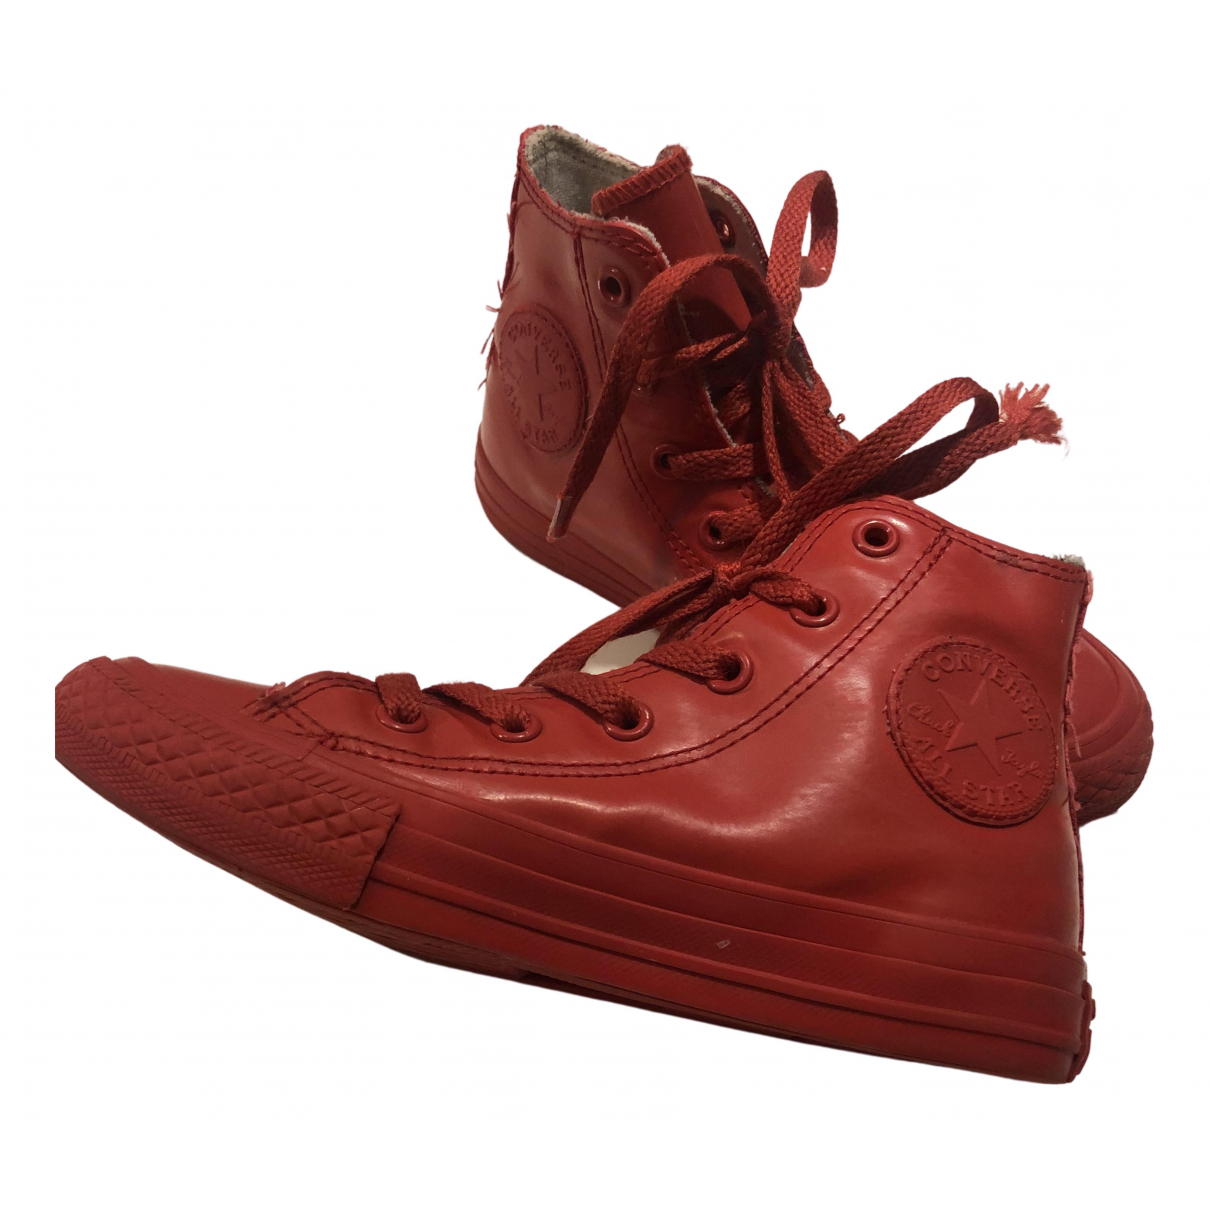 Converse N Red Rubber Trainers for Kids 30 FR